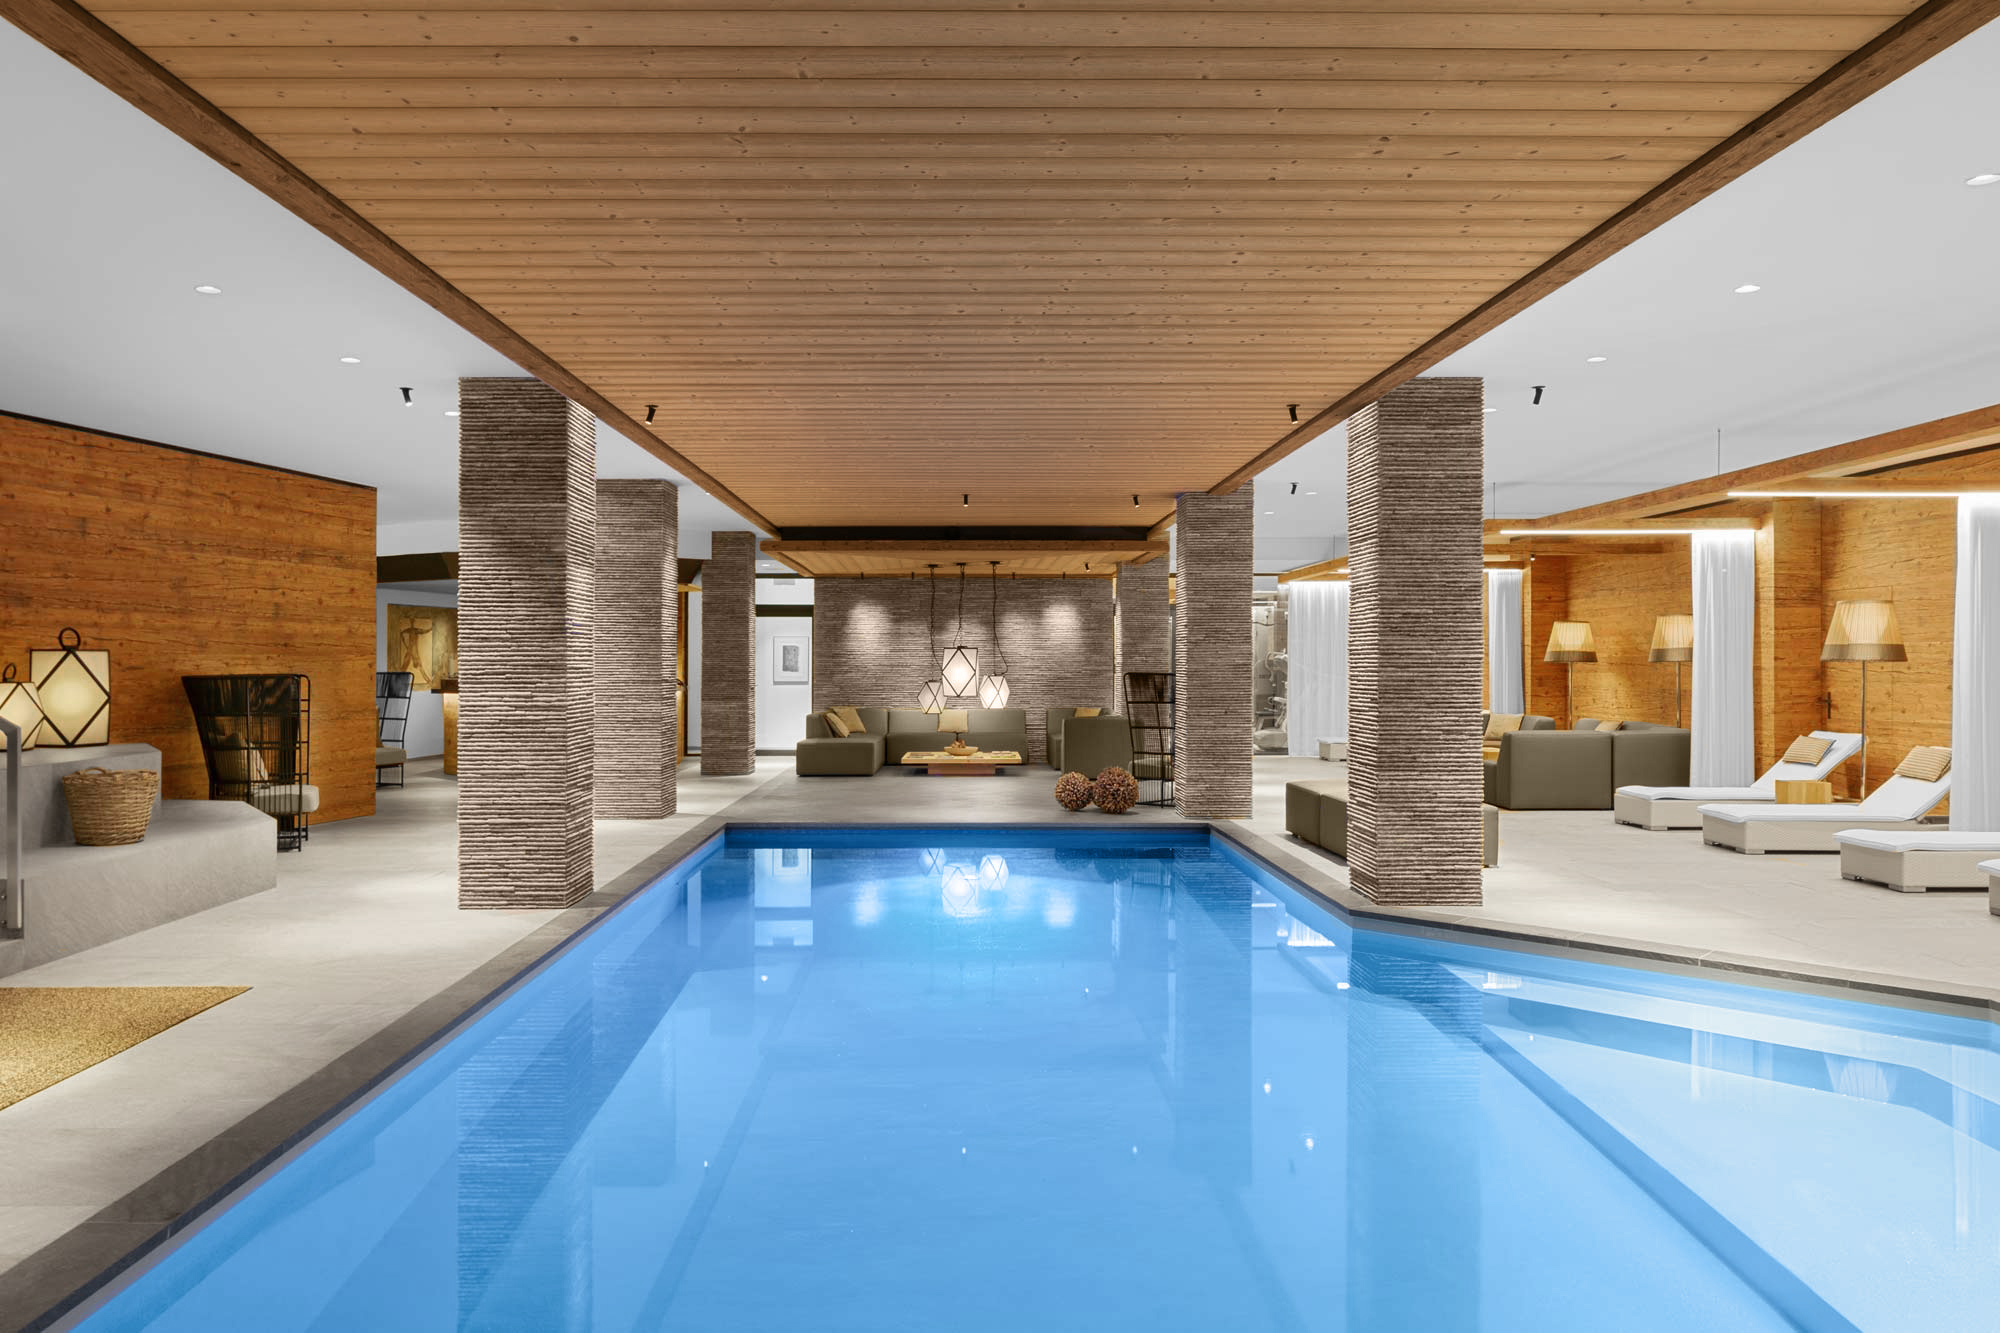 Hotel Spa photography by Adrian Kilchherr, Hotel and Resort Photographer from Switzerland.